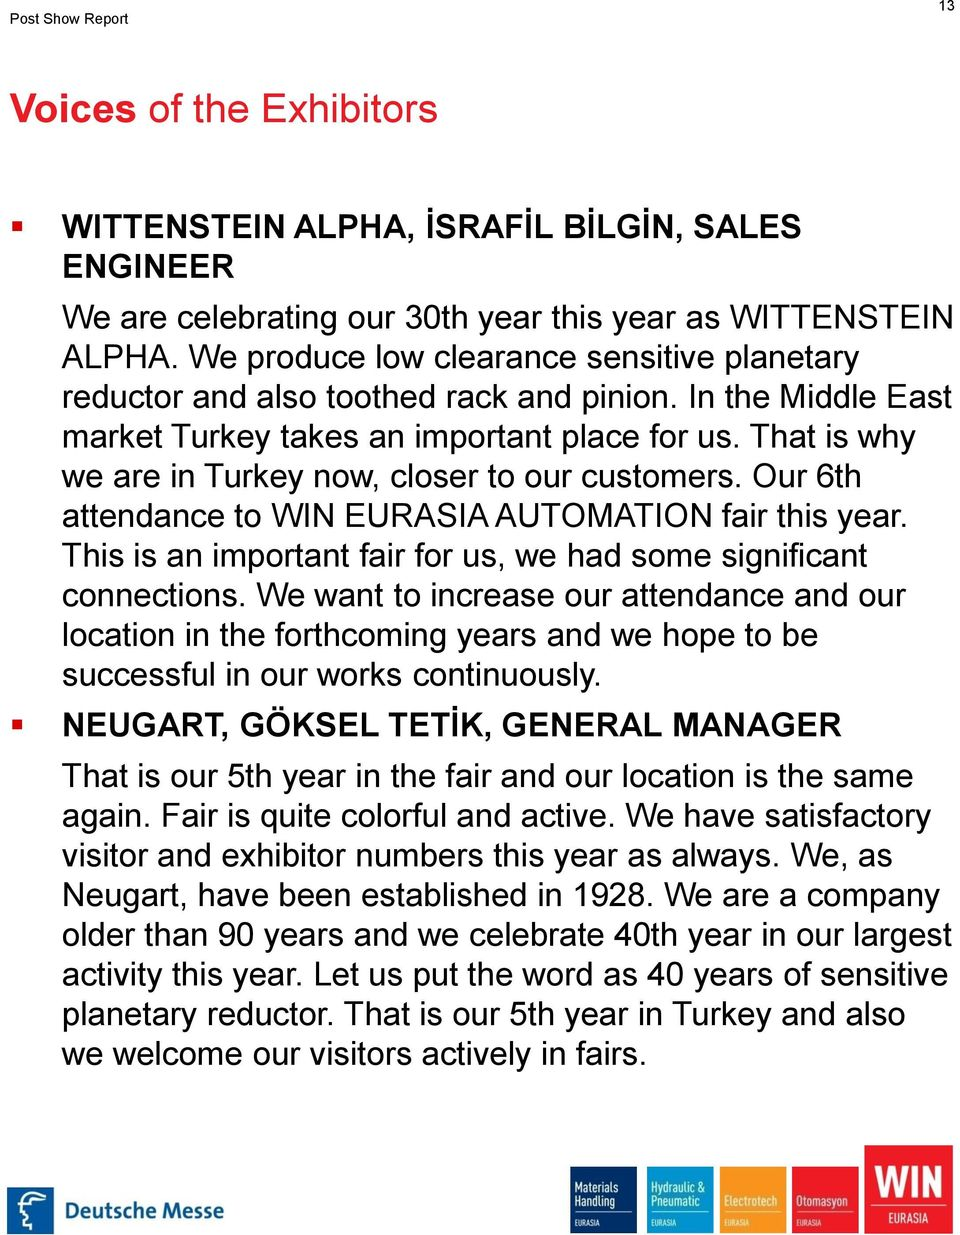 That is why we are in Turkey now, closer to our customers. Our 6th attendance to WIN EURASIA AUTOMATION fair this year. This is an important fair for us, we had some significant connections.